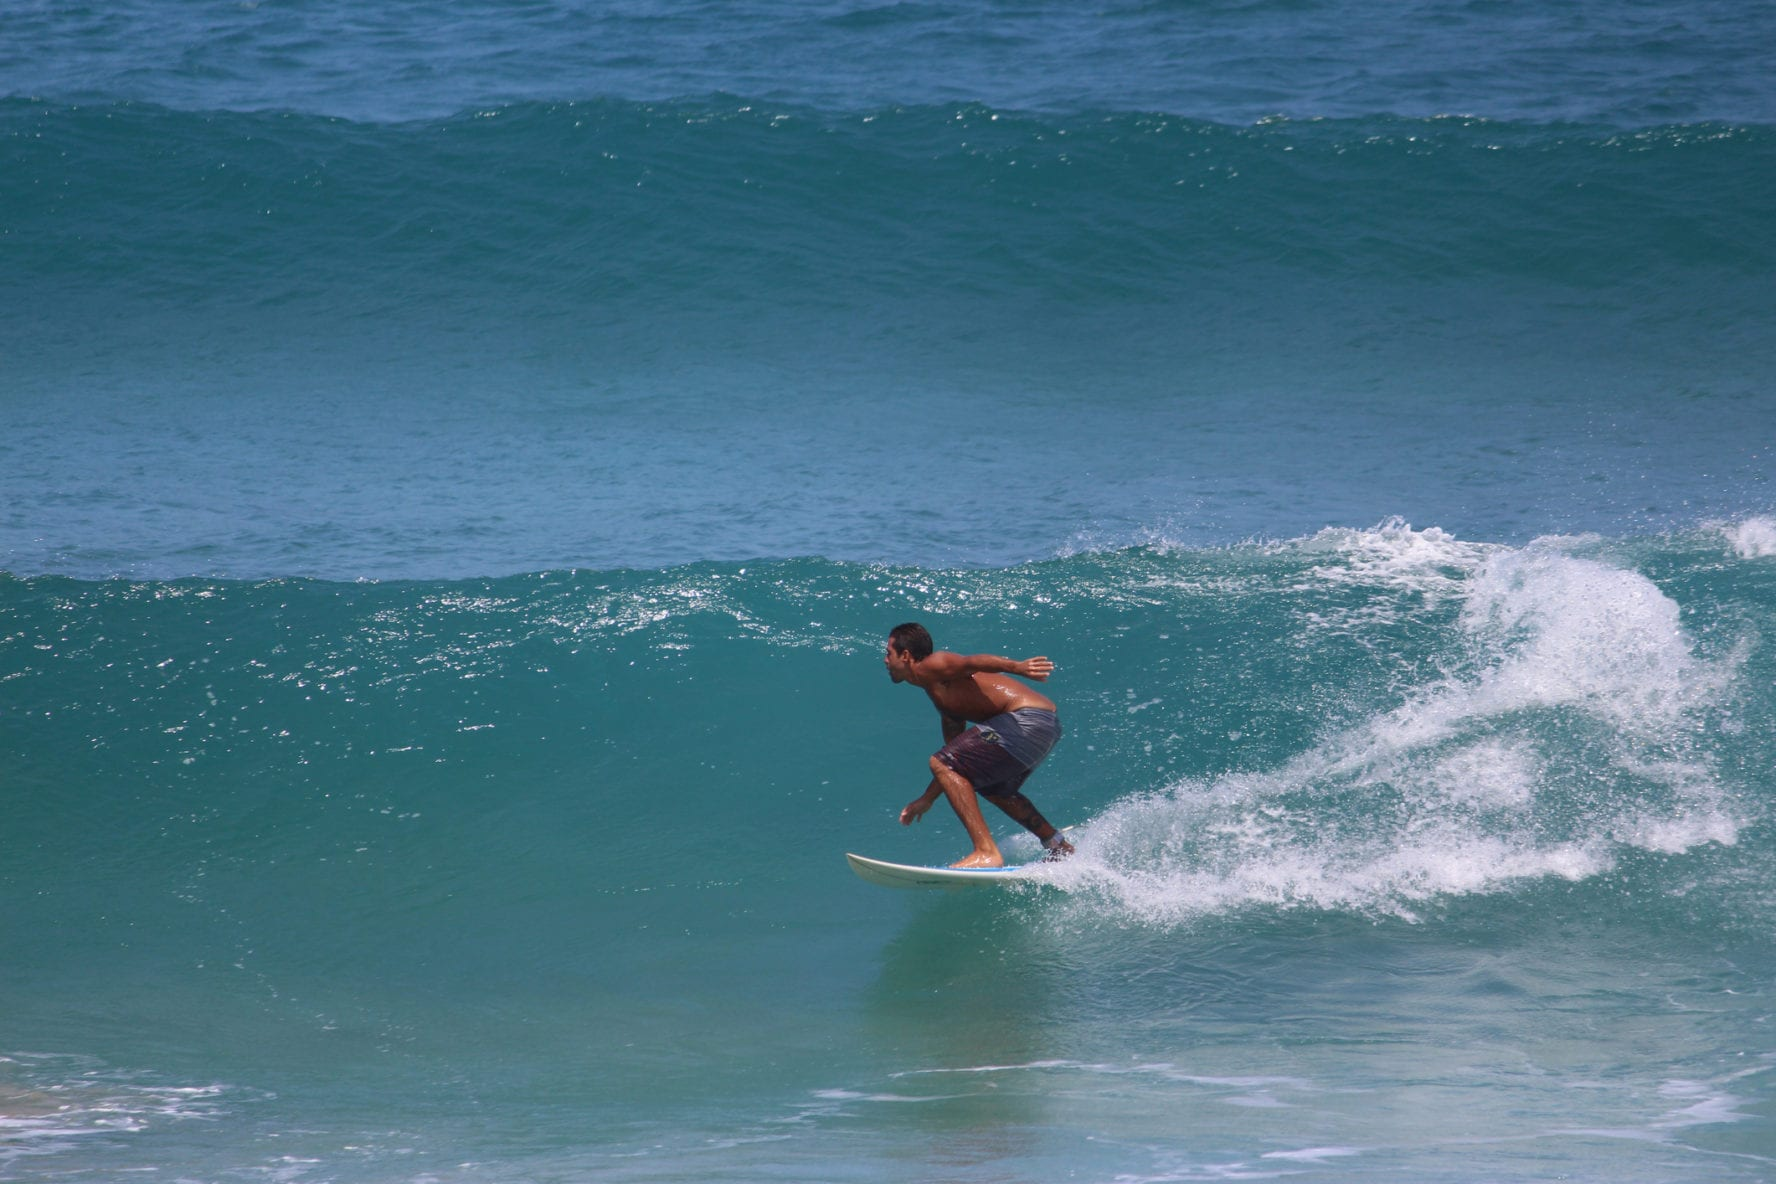 Surfing at Rincon, Puerto rico